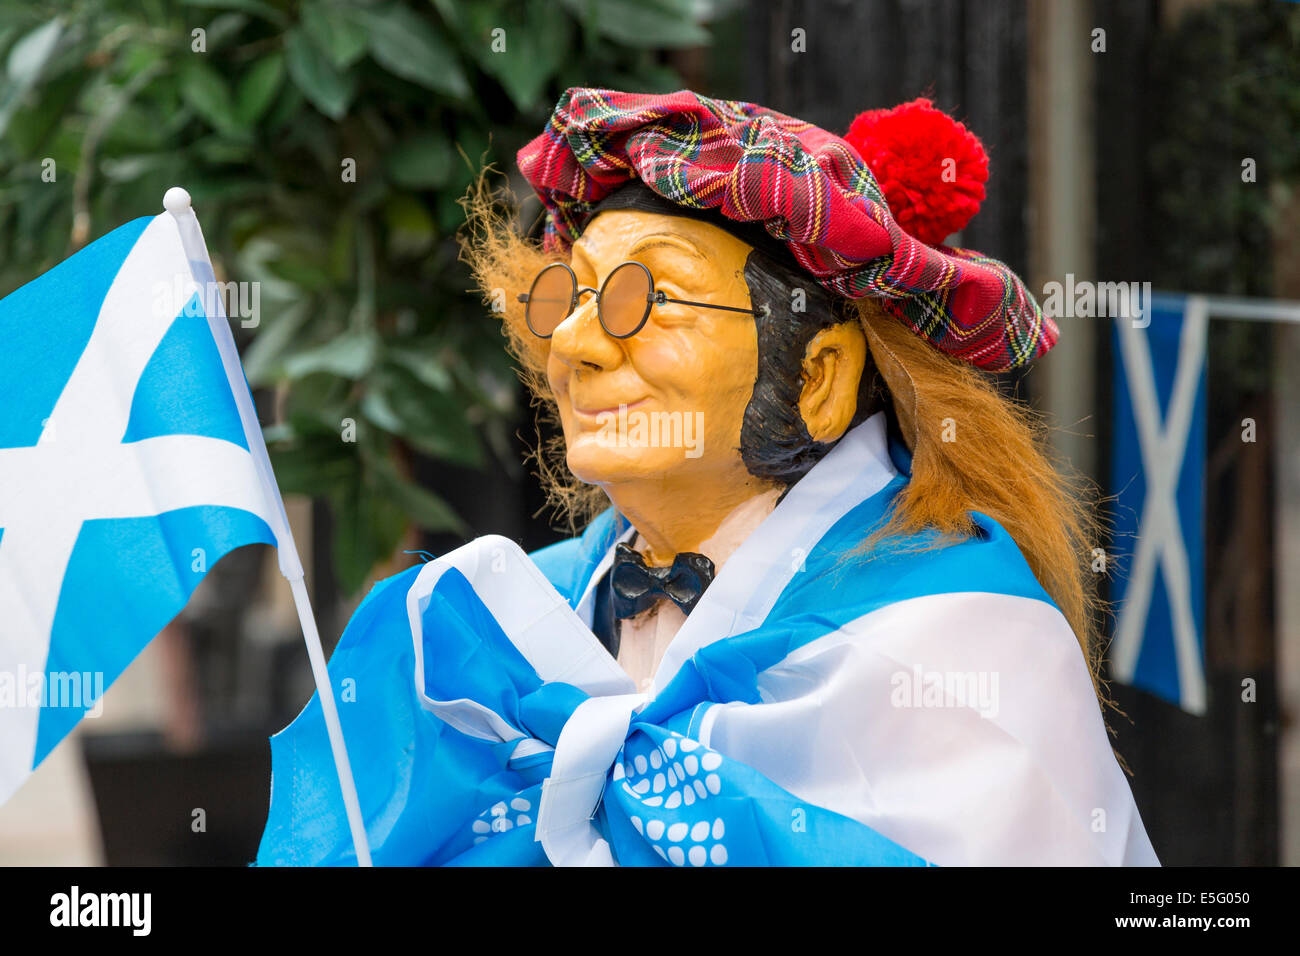 Small mannequin of a man dressed in a tartan hat, covered with a Saltire flag and carrying a small flag, - Stock Image